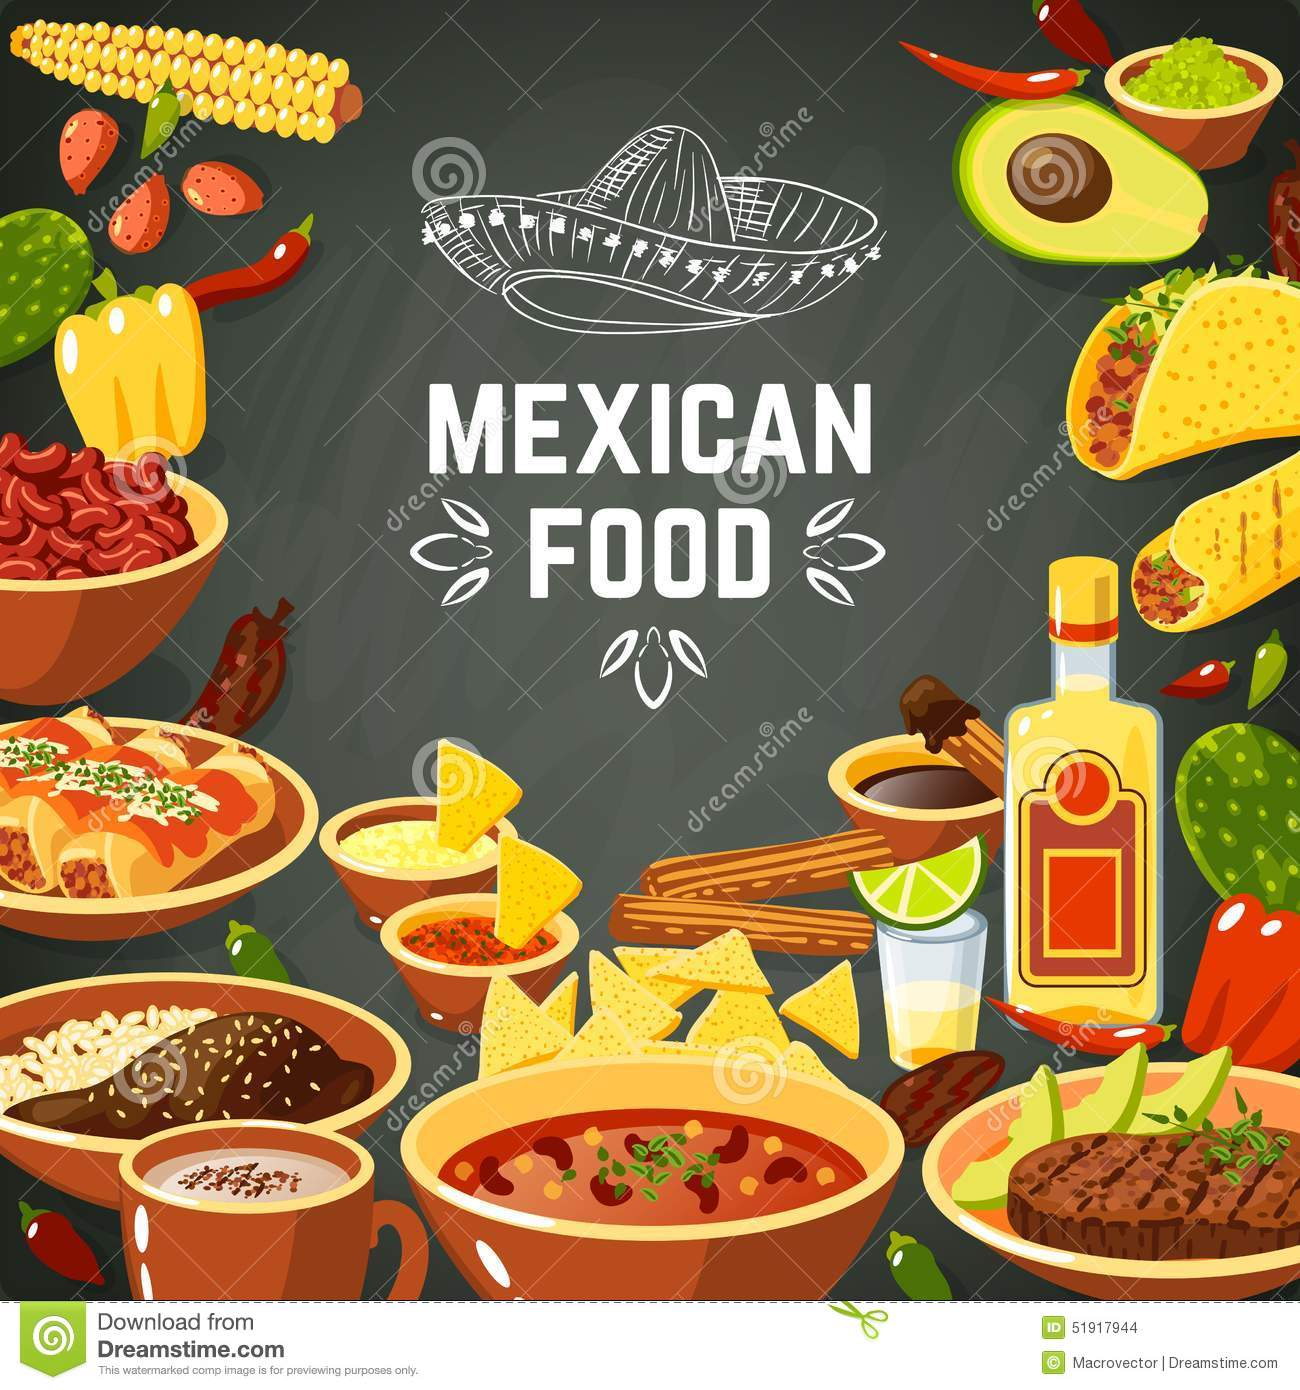 3d desktop wallpaper mexican food - photo #35